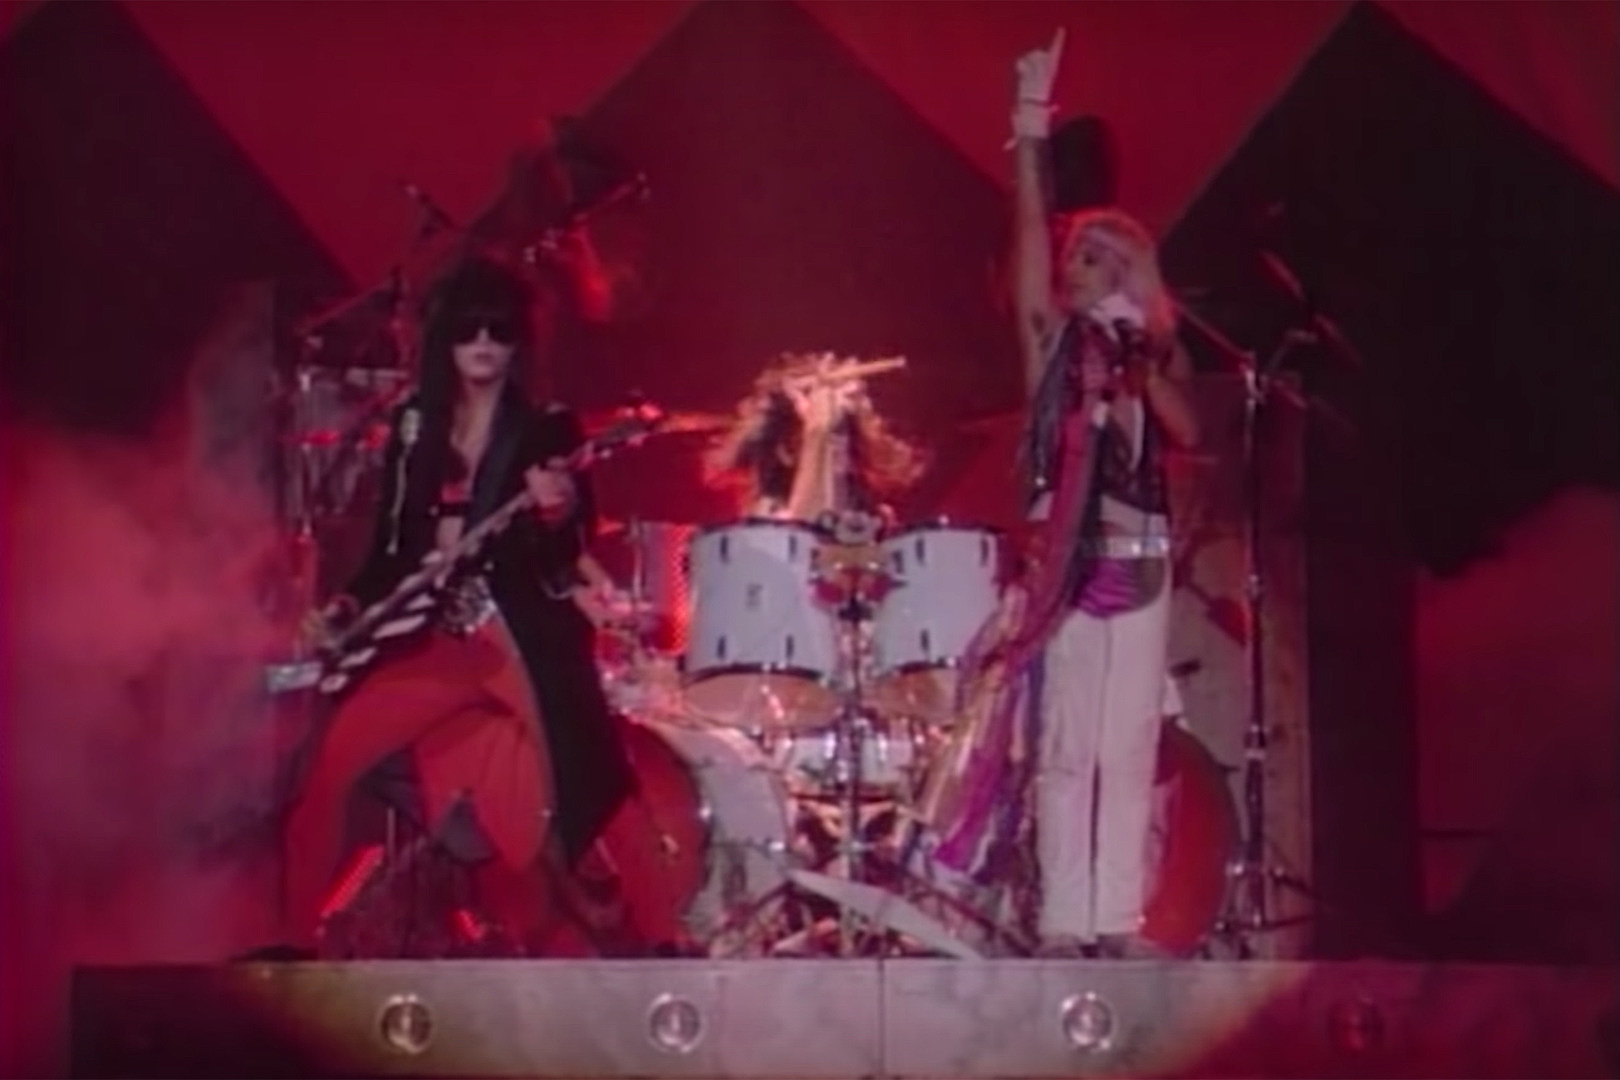 20 Best Motley Crue Videos Ranked Cleanest to 'The Dirt'-iest